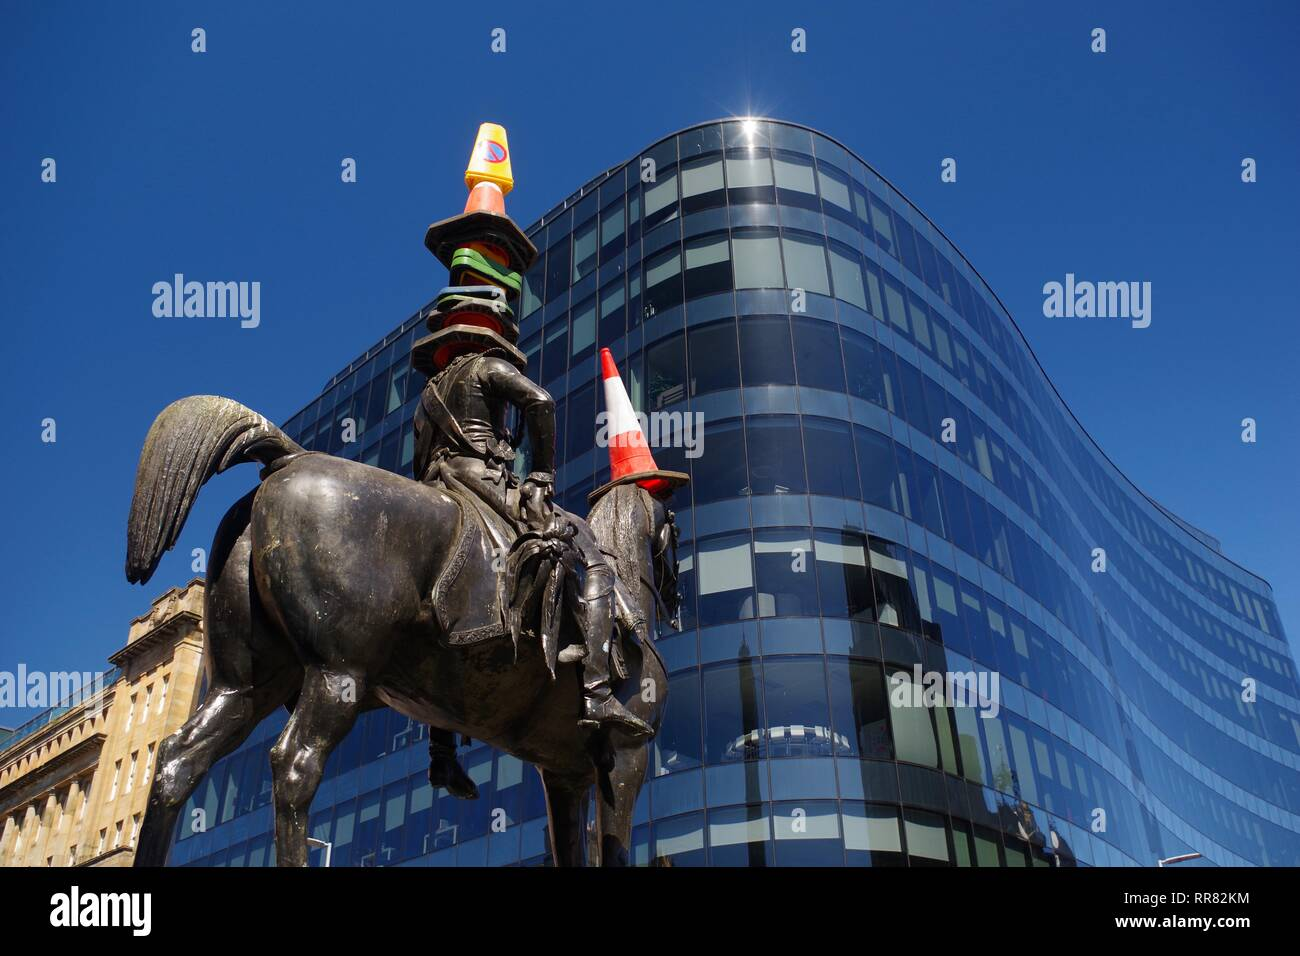 Equestrian statue of the Duke of Wellington, with Traffic Cones on Head.  Gallery of Modern Art, Glasgow, Scotland, UK. - Stock Image